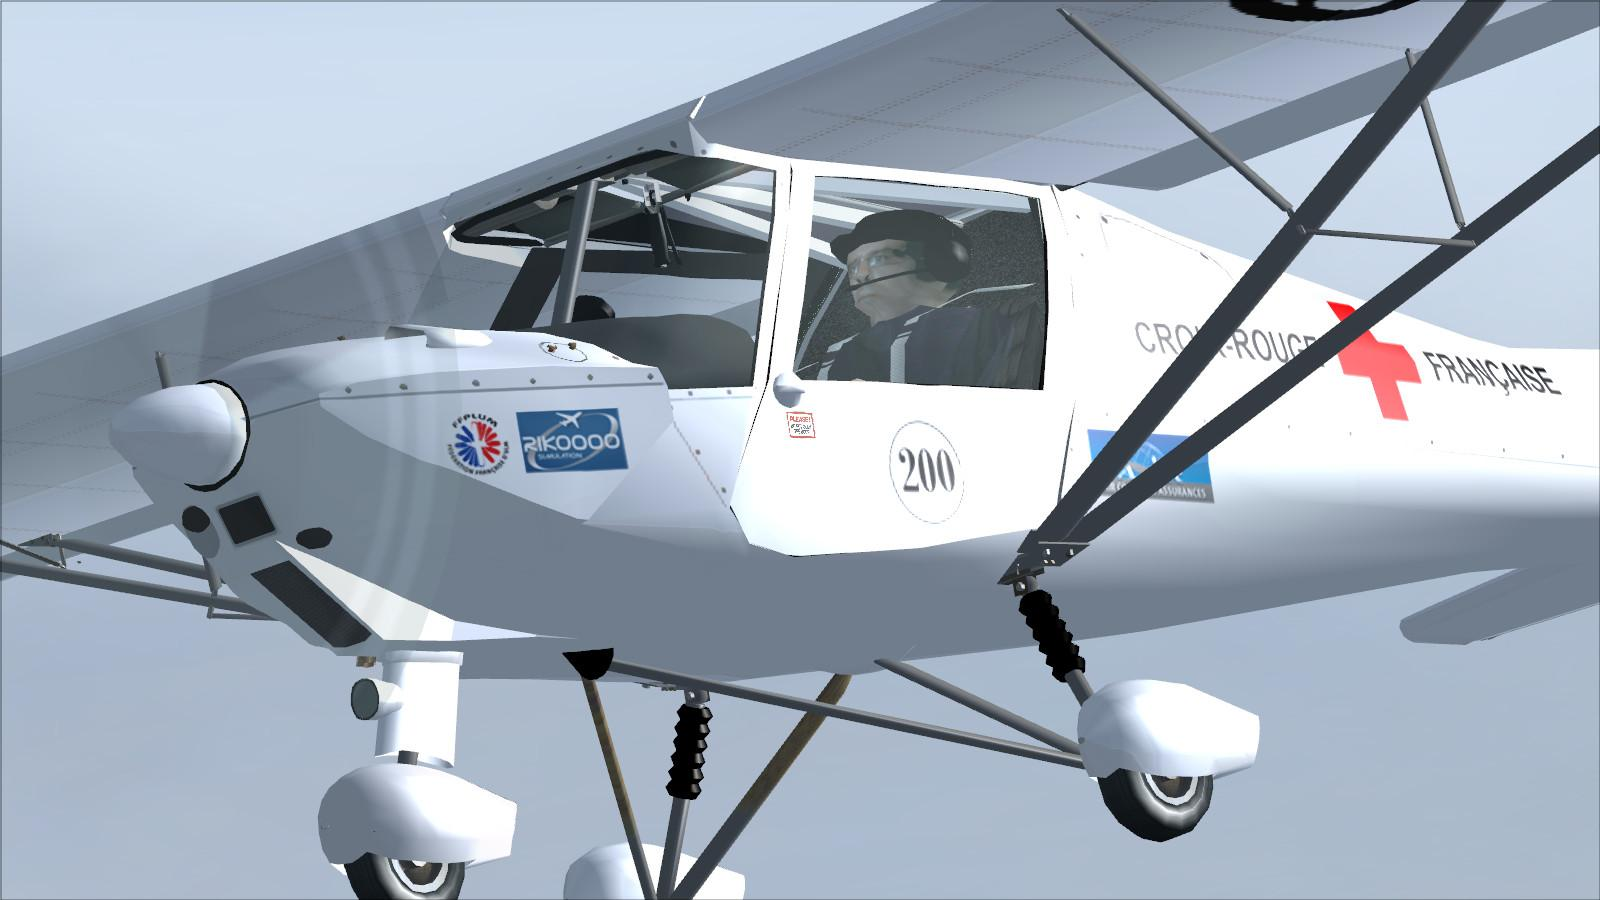 Download comco ikarus c42 red cross fsx p3d rikoooo for Ikarus